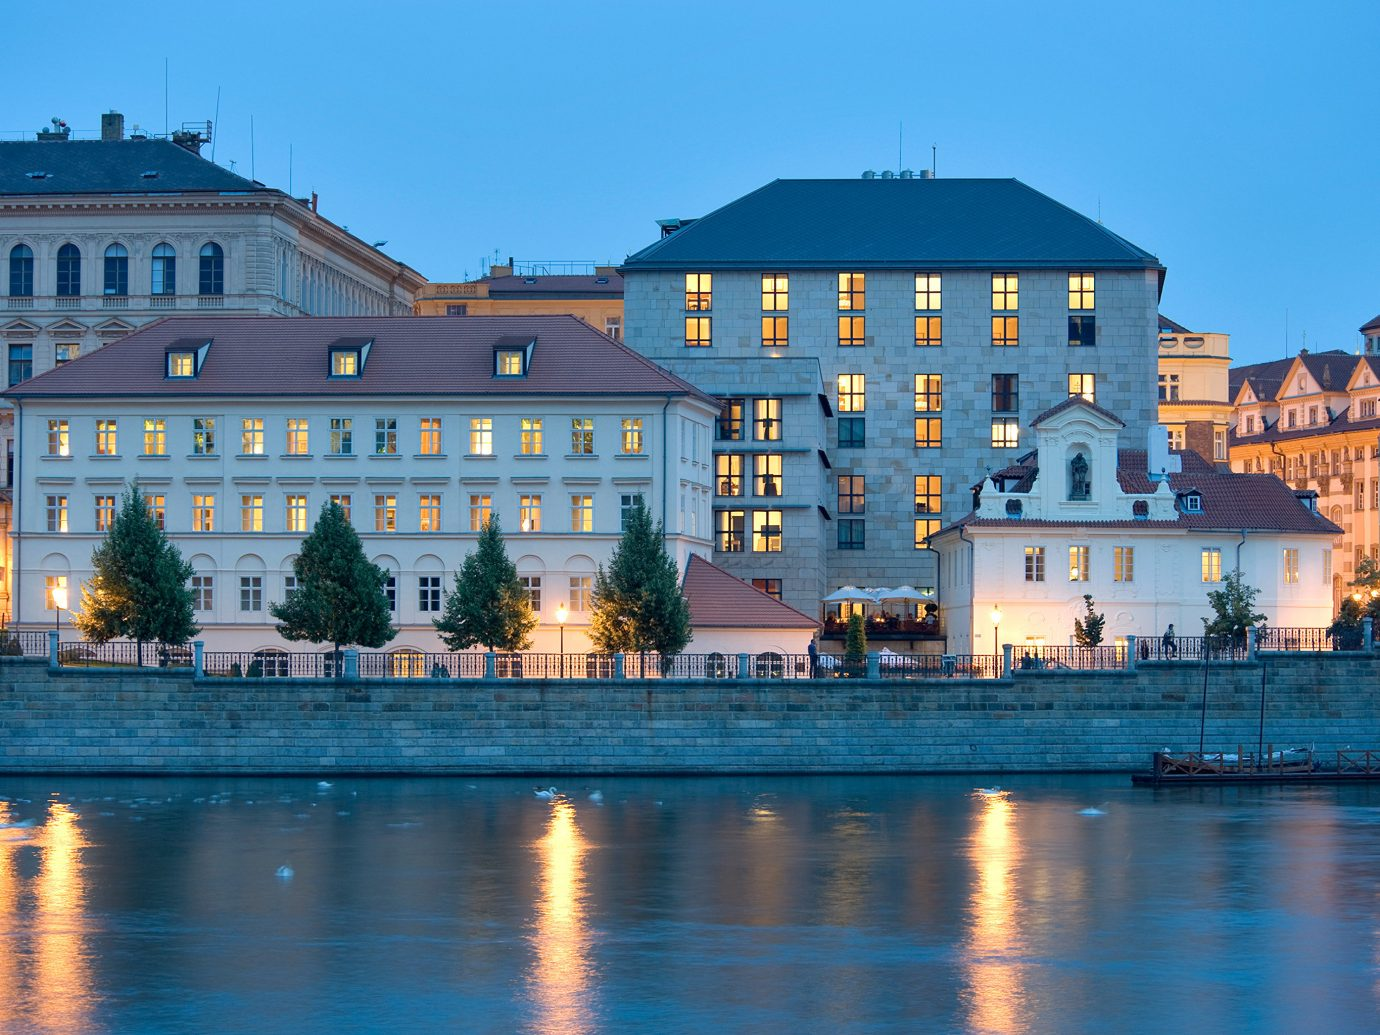 Architecture Buildings Cultural europe Exterior Hotels Landmarks Outdoors Prague water sky building outdoor Town reflection landmark cityscape house River evening Downtown estate dusk waterway palace castle